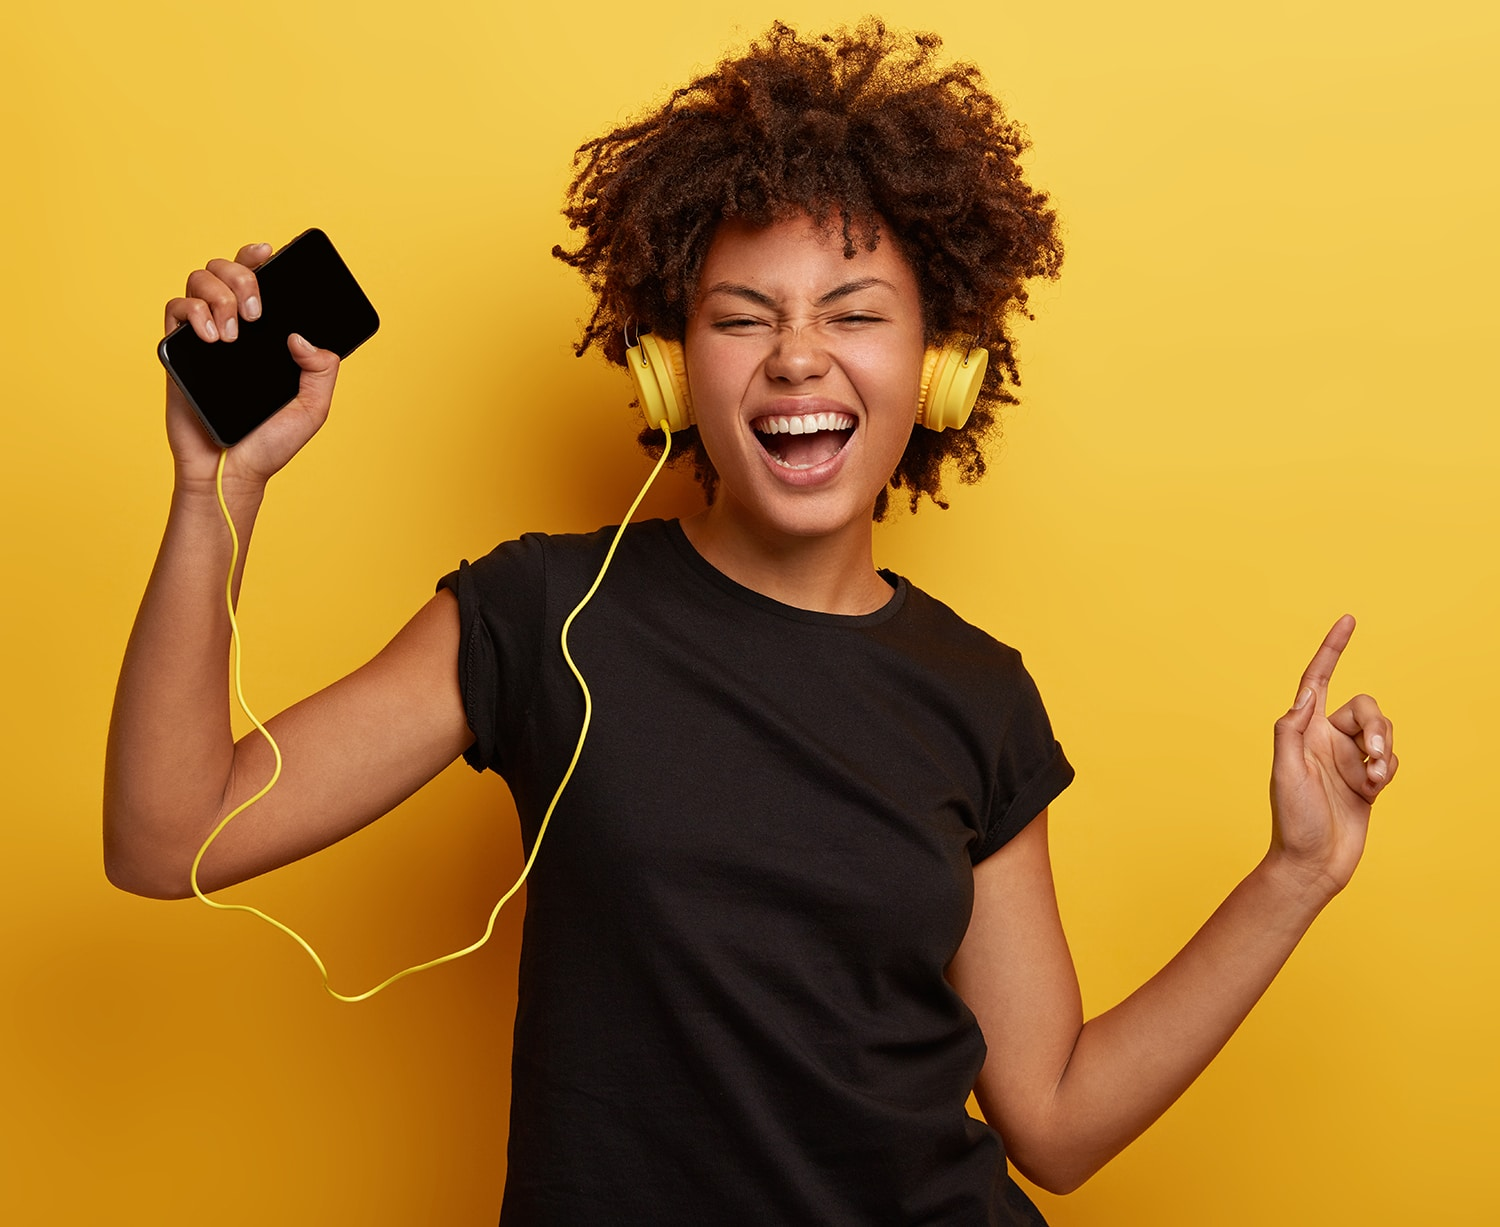 Girl listening to music with headphones on yellow background